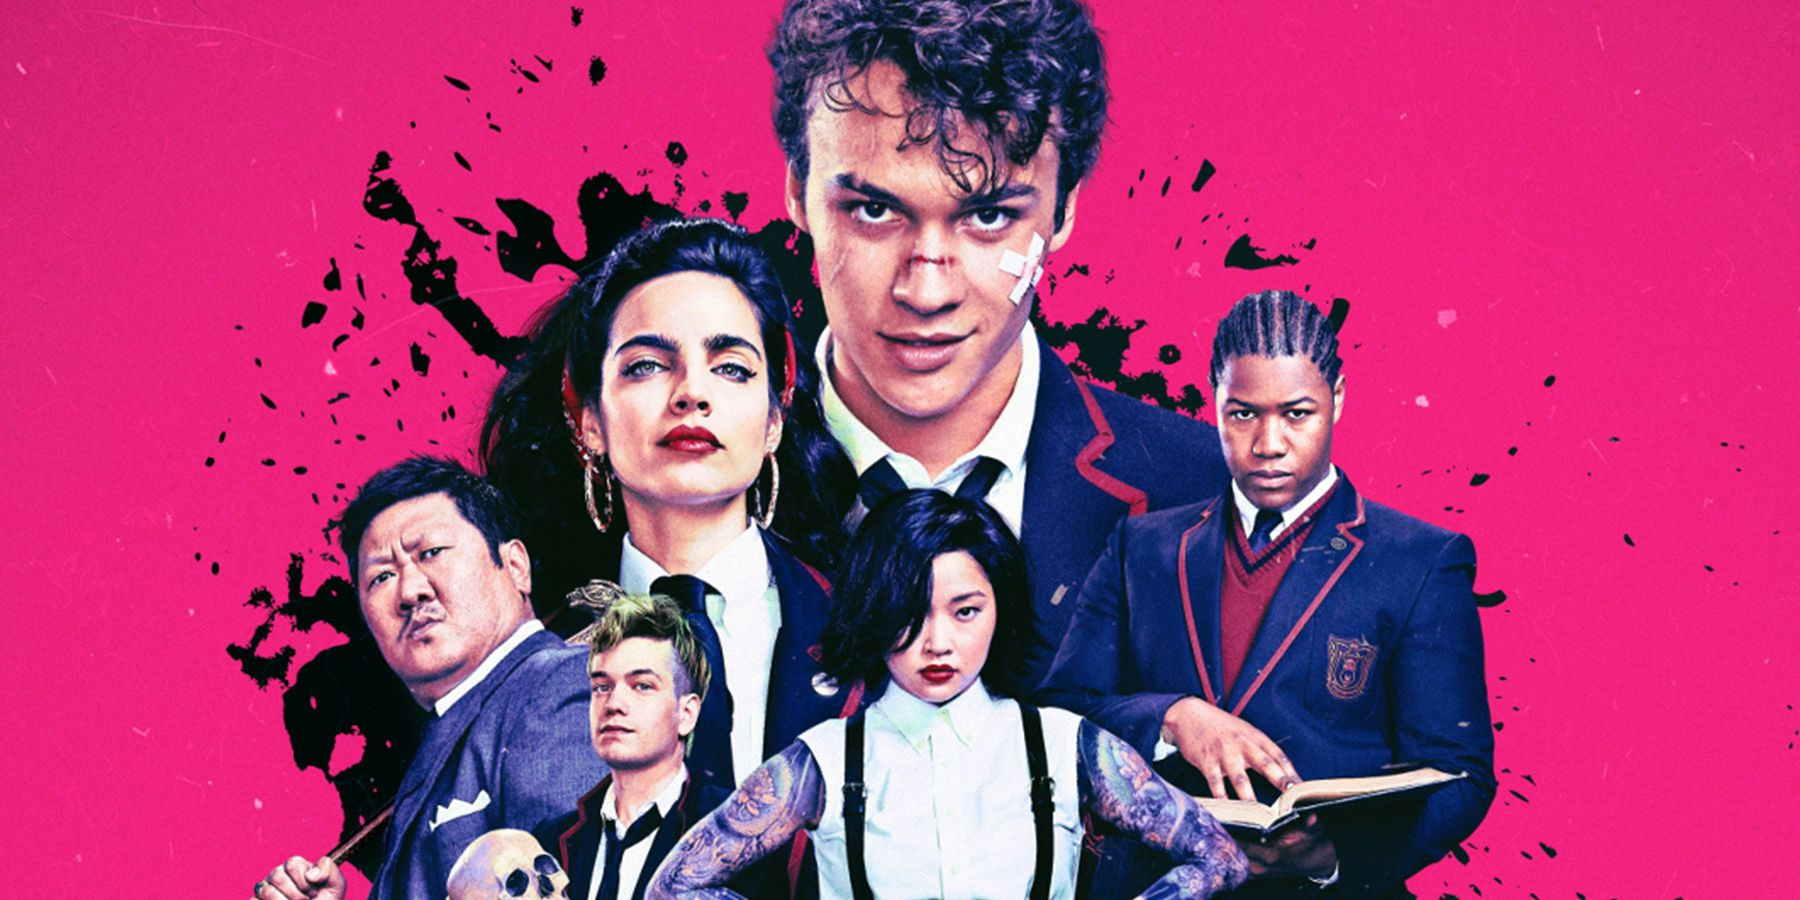 Deadly Class TV Series Trailer & Poster Teases SYFY's Comic Adaptation